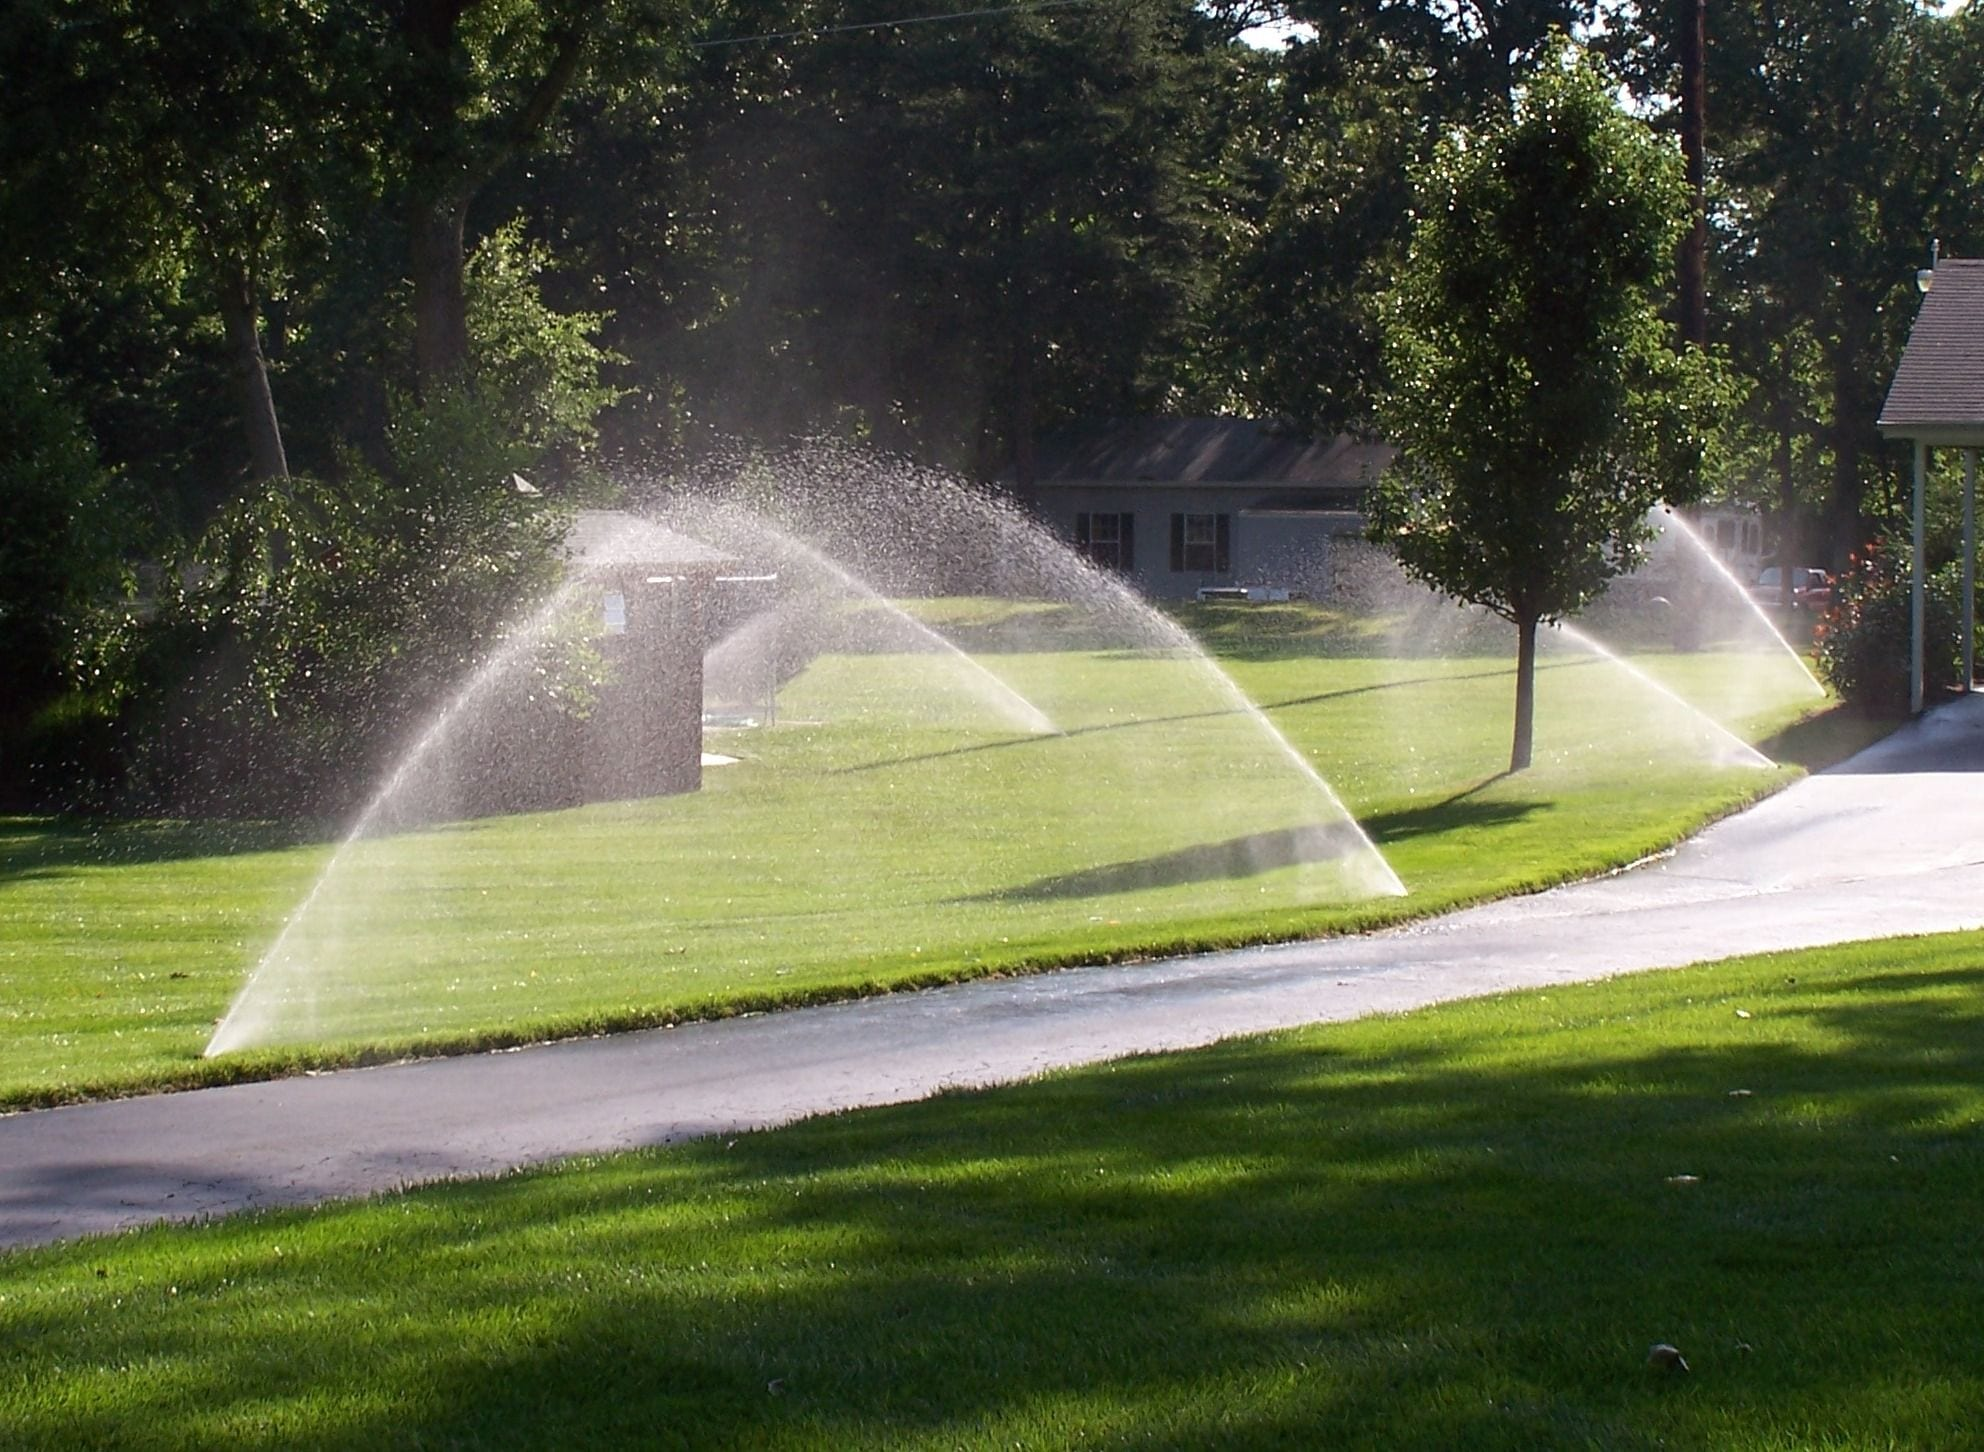 Installing lawn sprinkler for watering your lawn